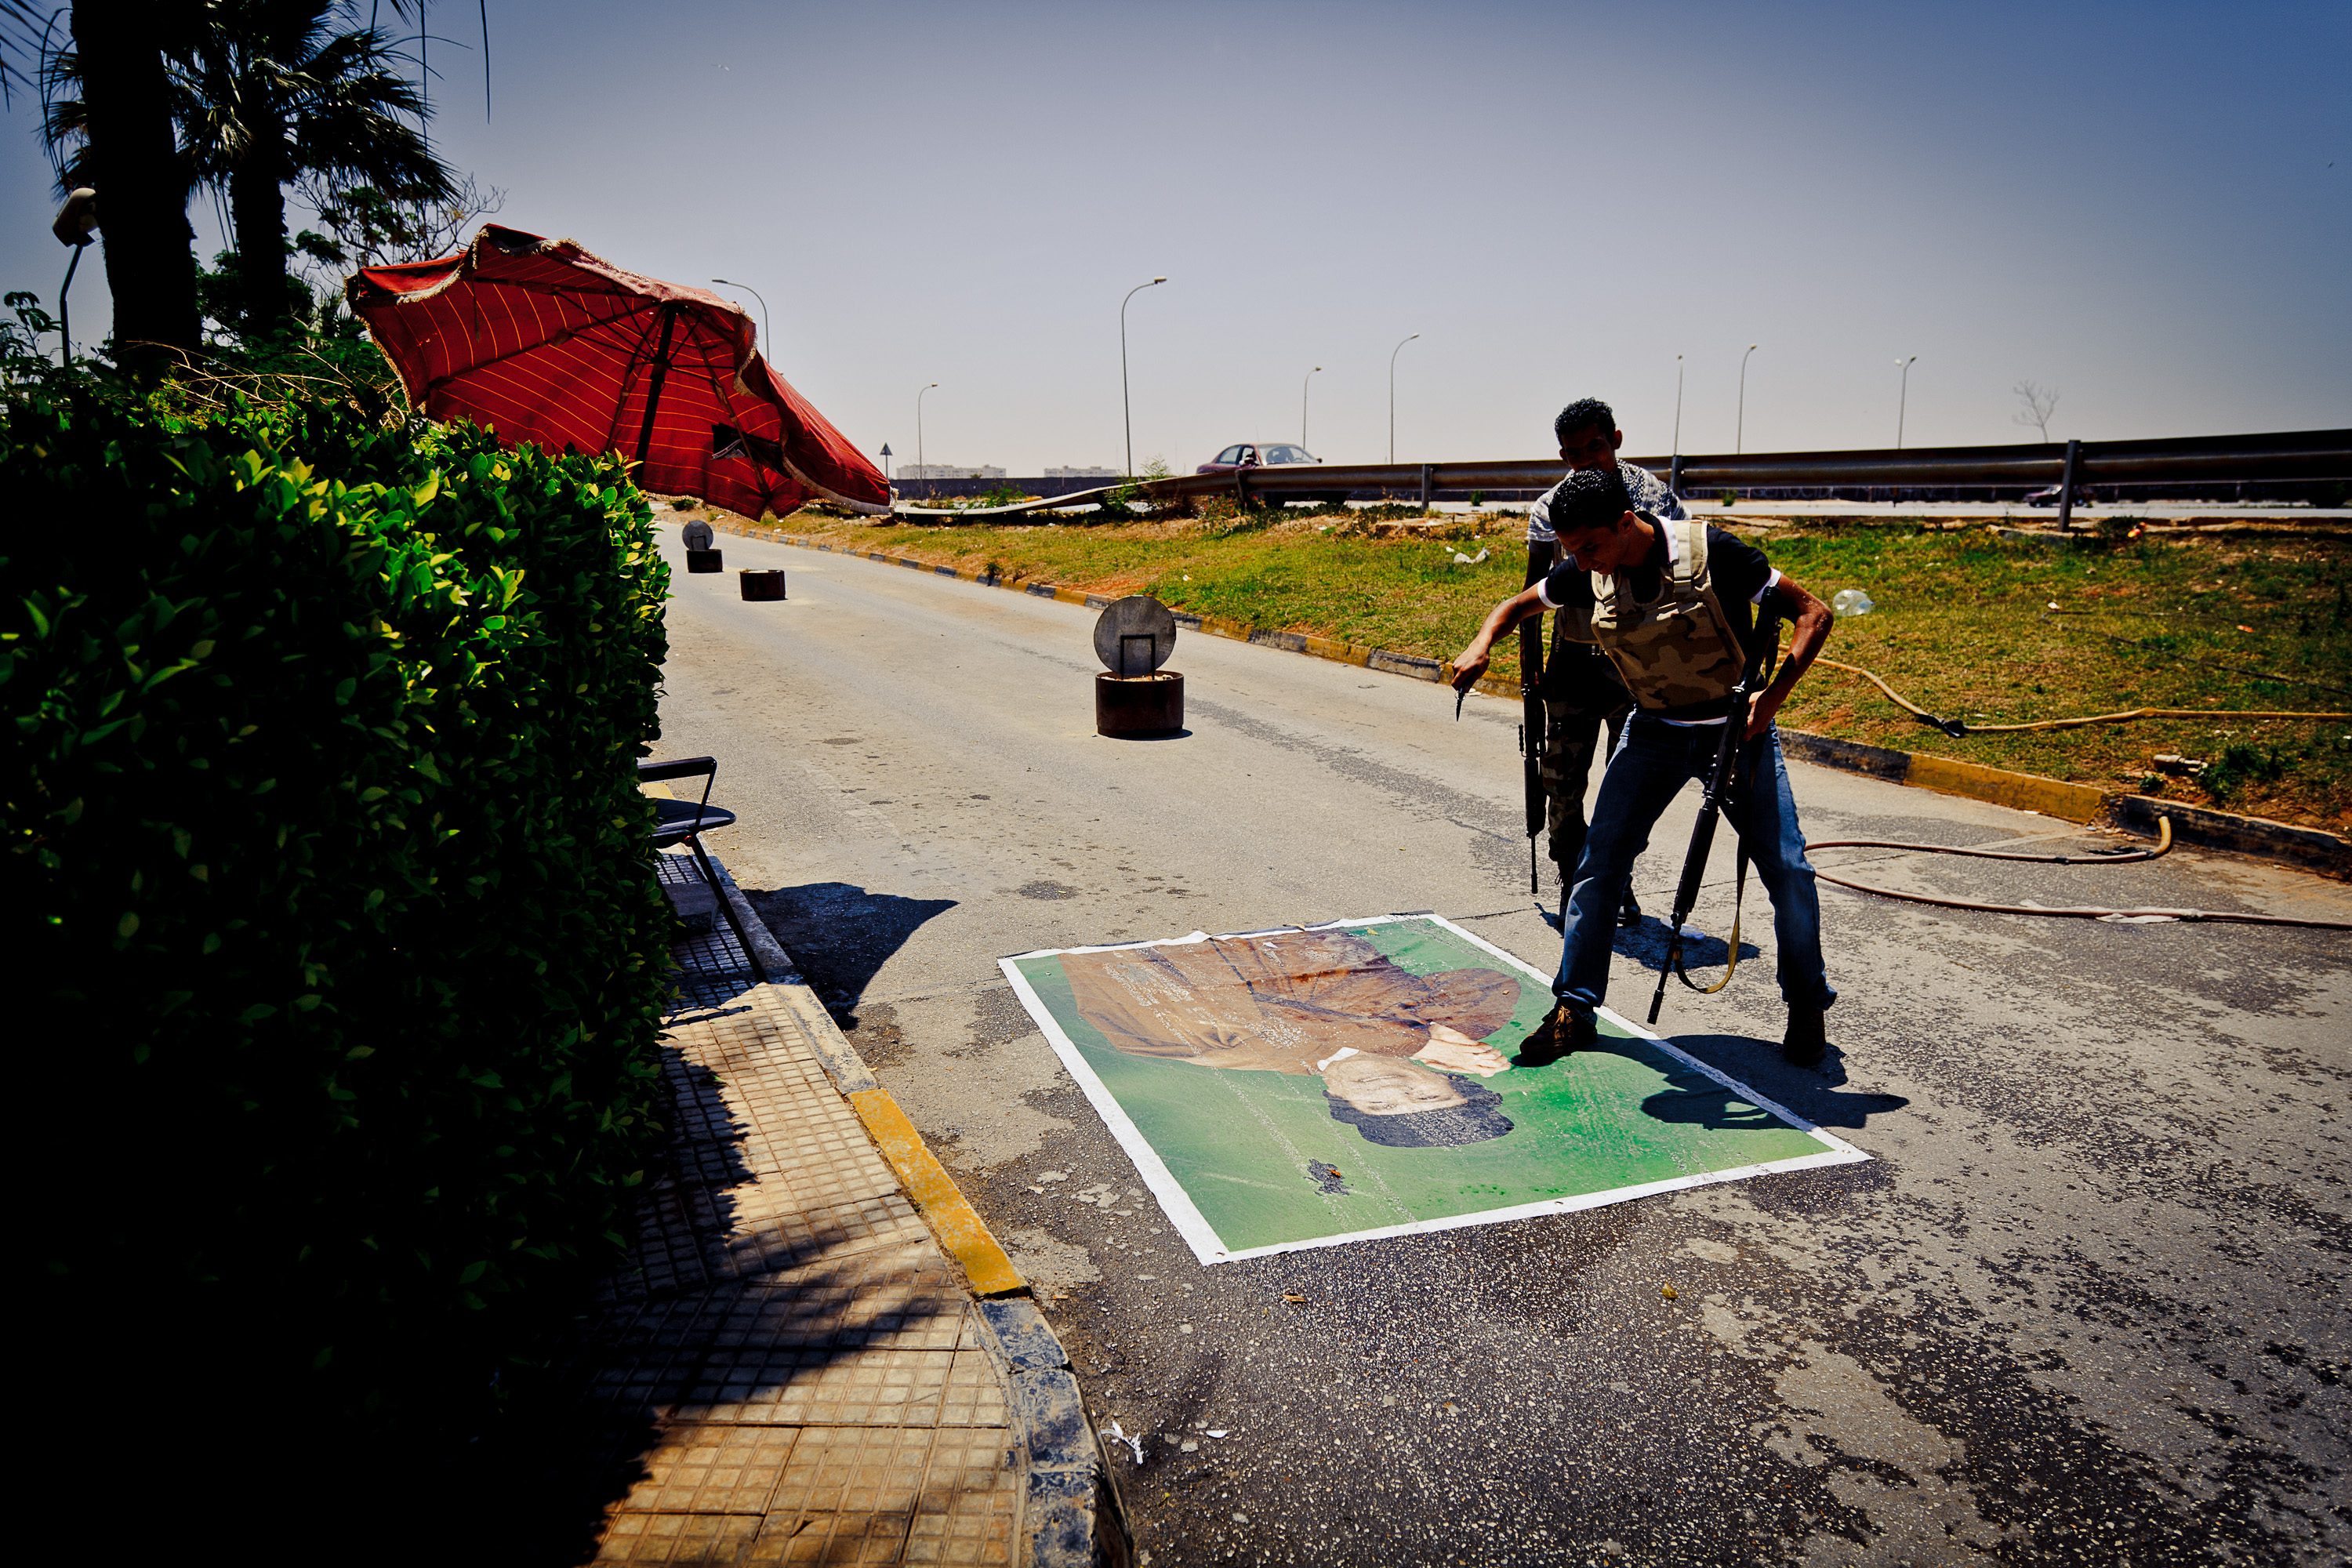 An anti-ghadaffi rebel points a knife and steps on a poster of Ghadaffi in Benghazi, Libya.